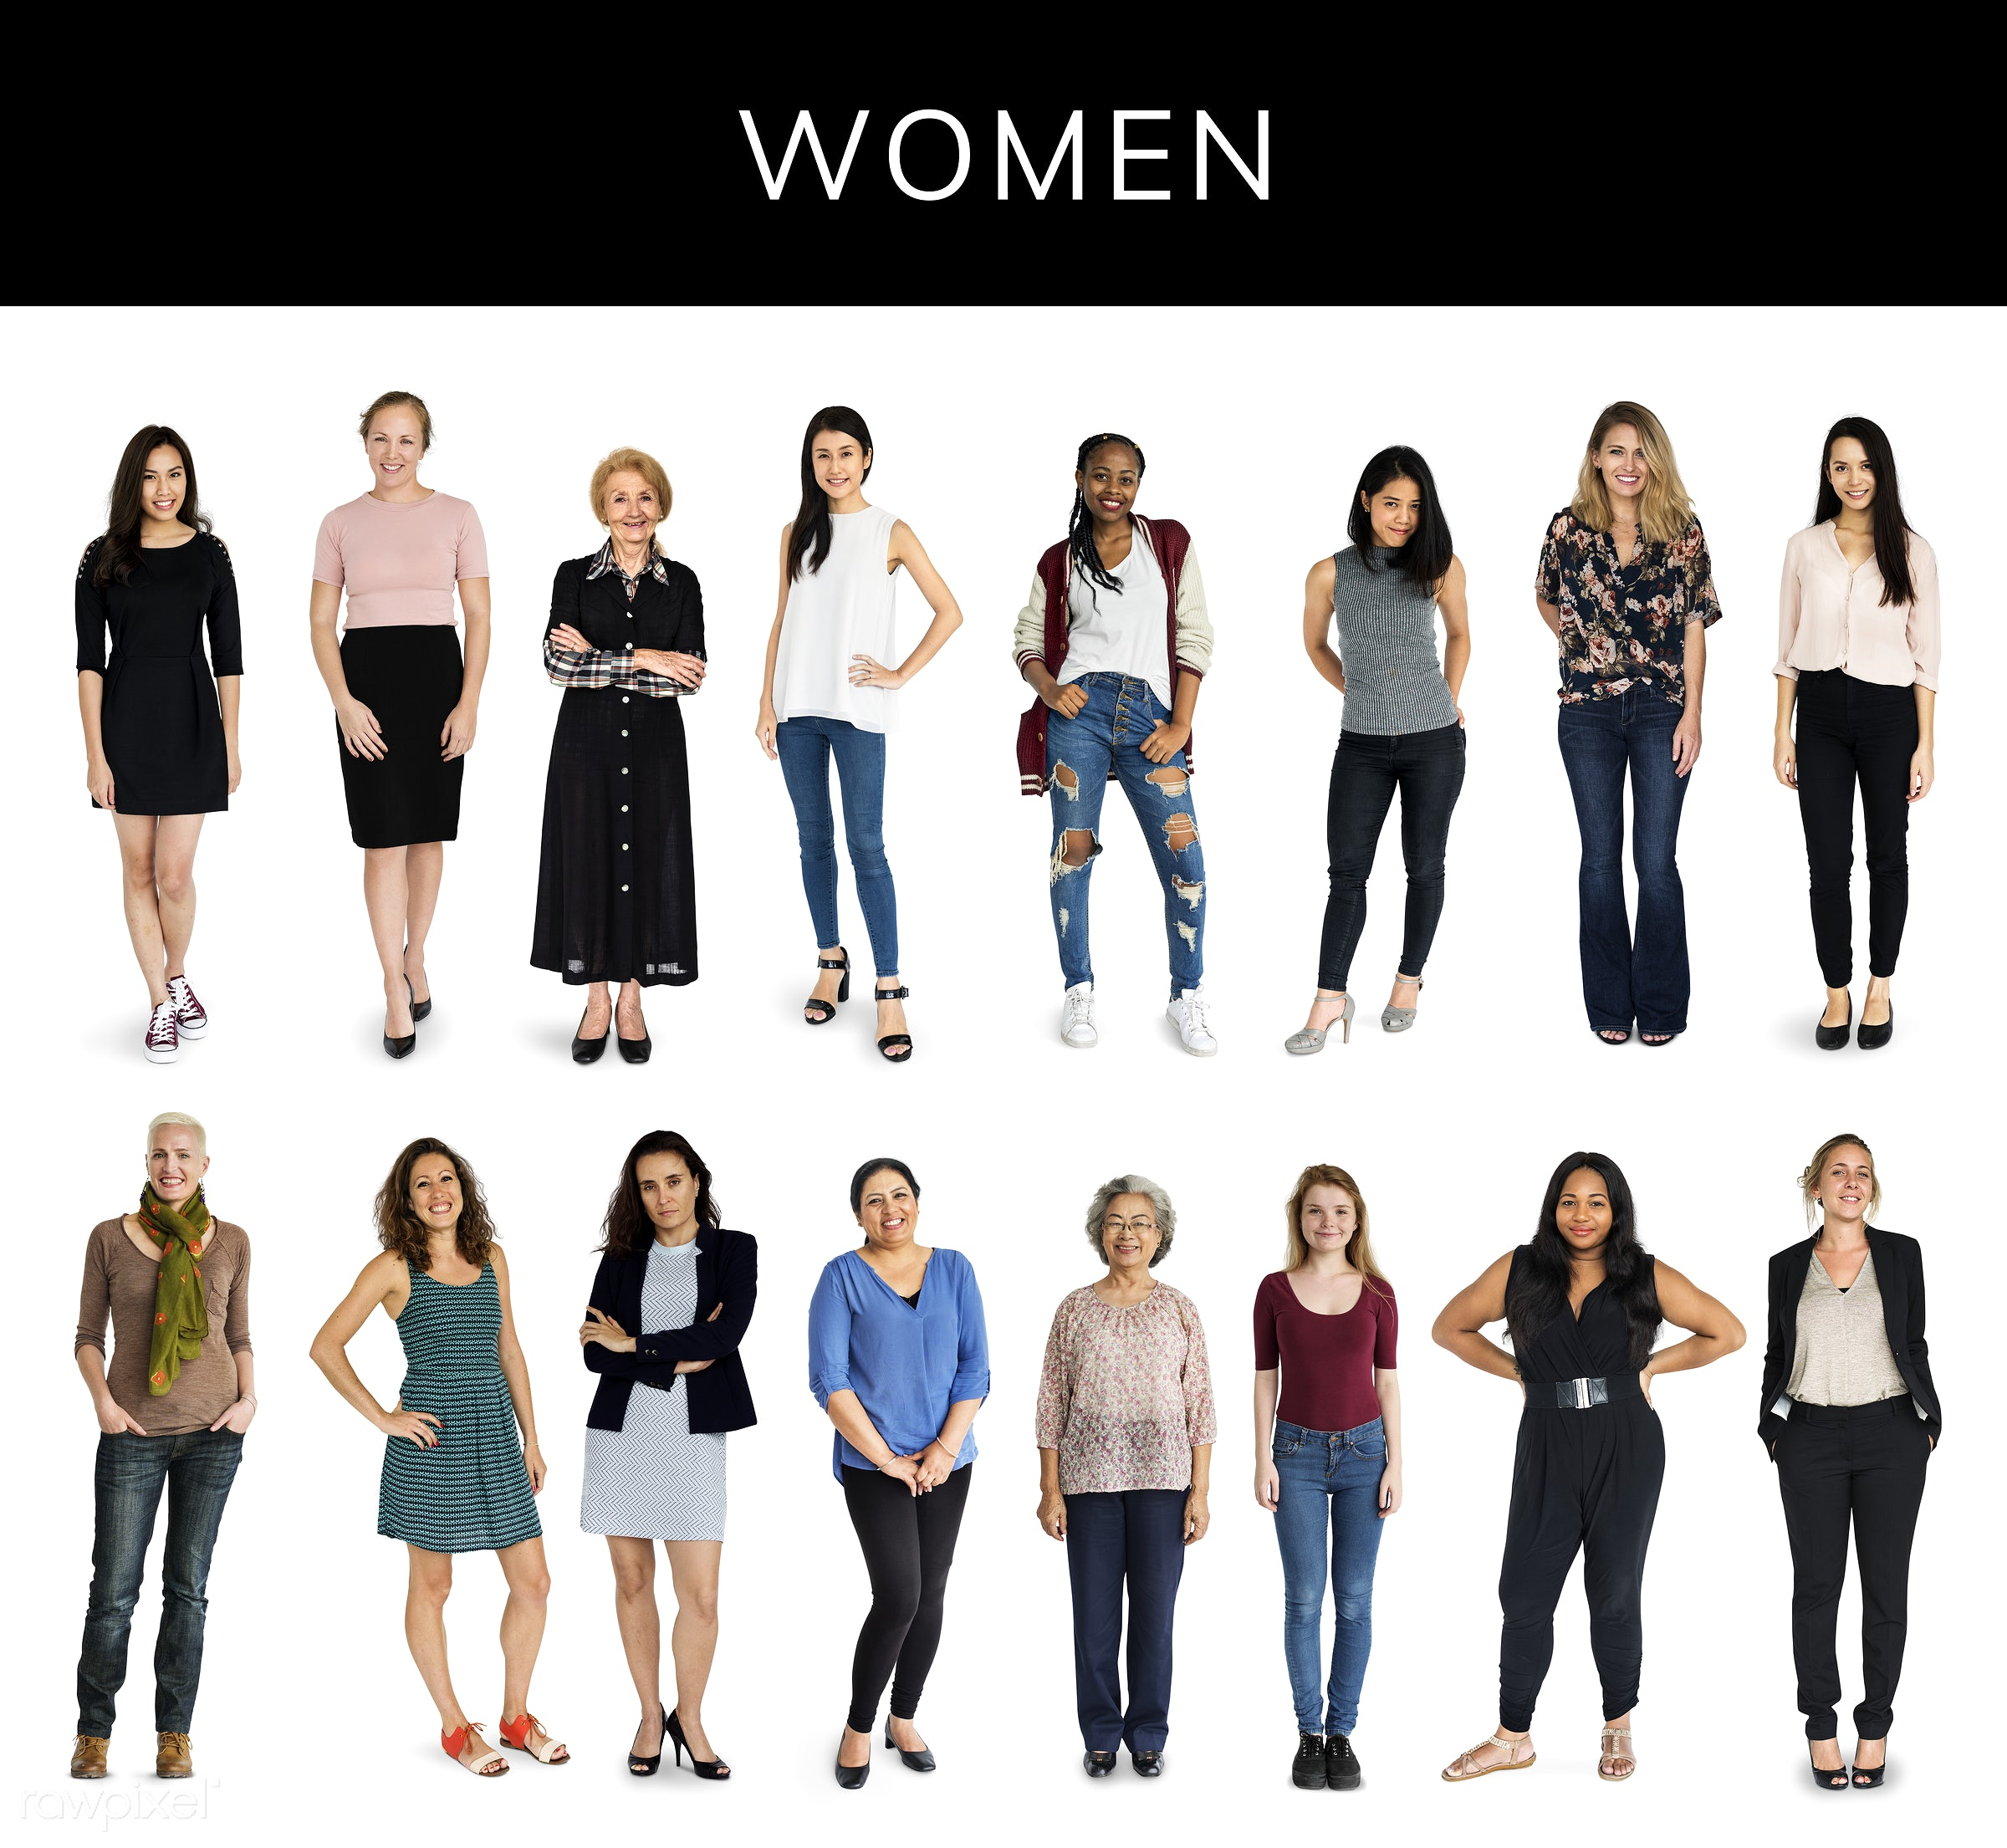 Diverse people set - studio, person, diverse, set, retired, little, collection, people, pretty, attraction, together,...